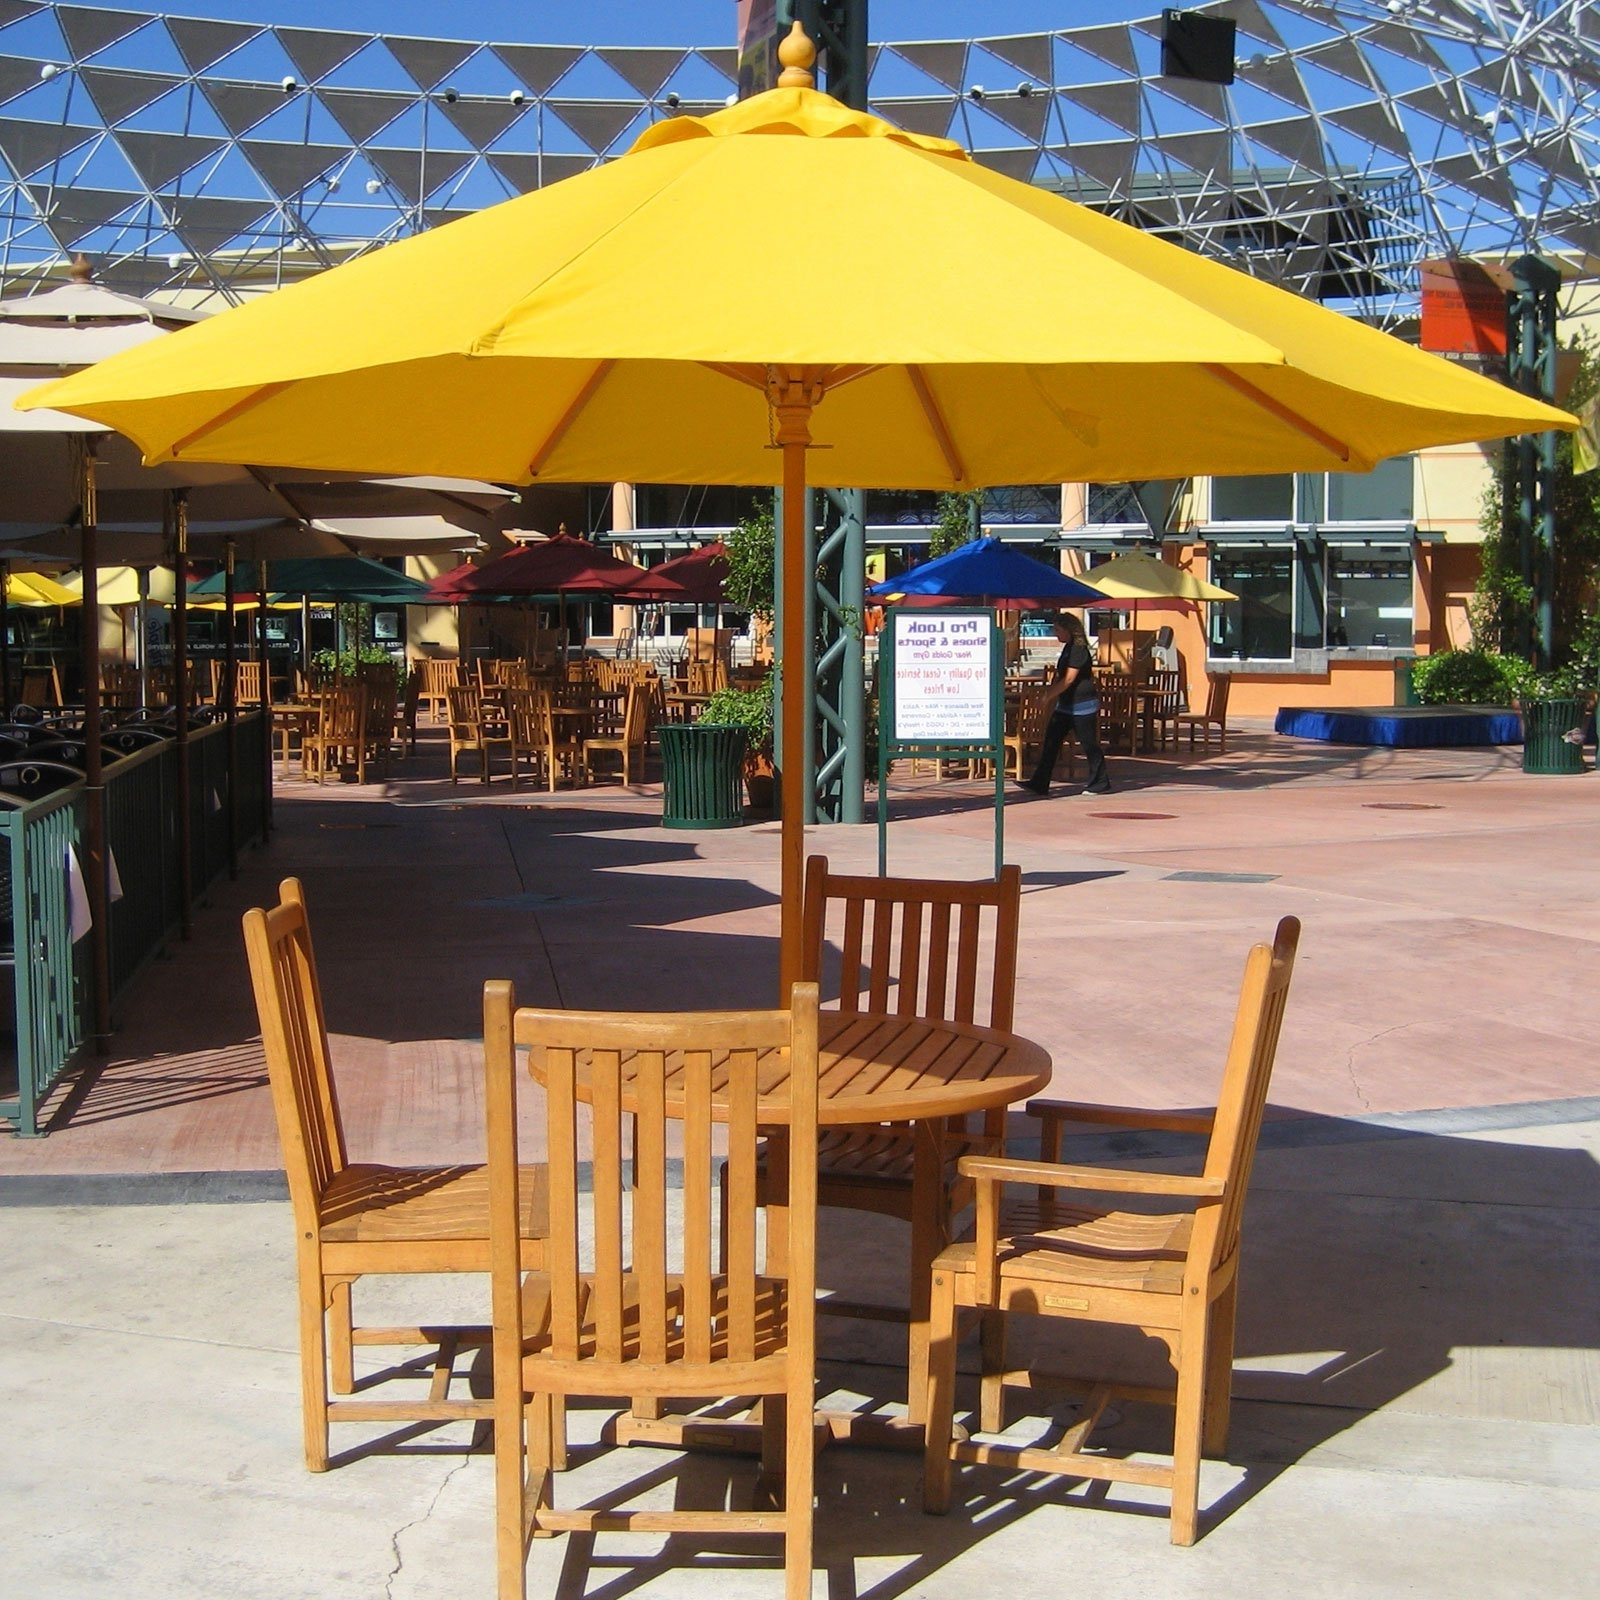 Fashionable Rustic Patio Table Umbrella — Wilson Home Ideas : Making Patio Table In Wooden Patio Umbrellas (View 14 of 20)